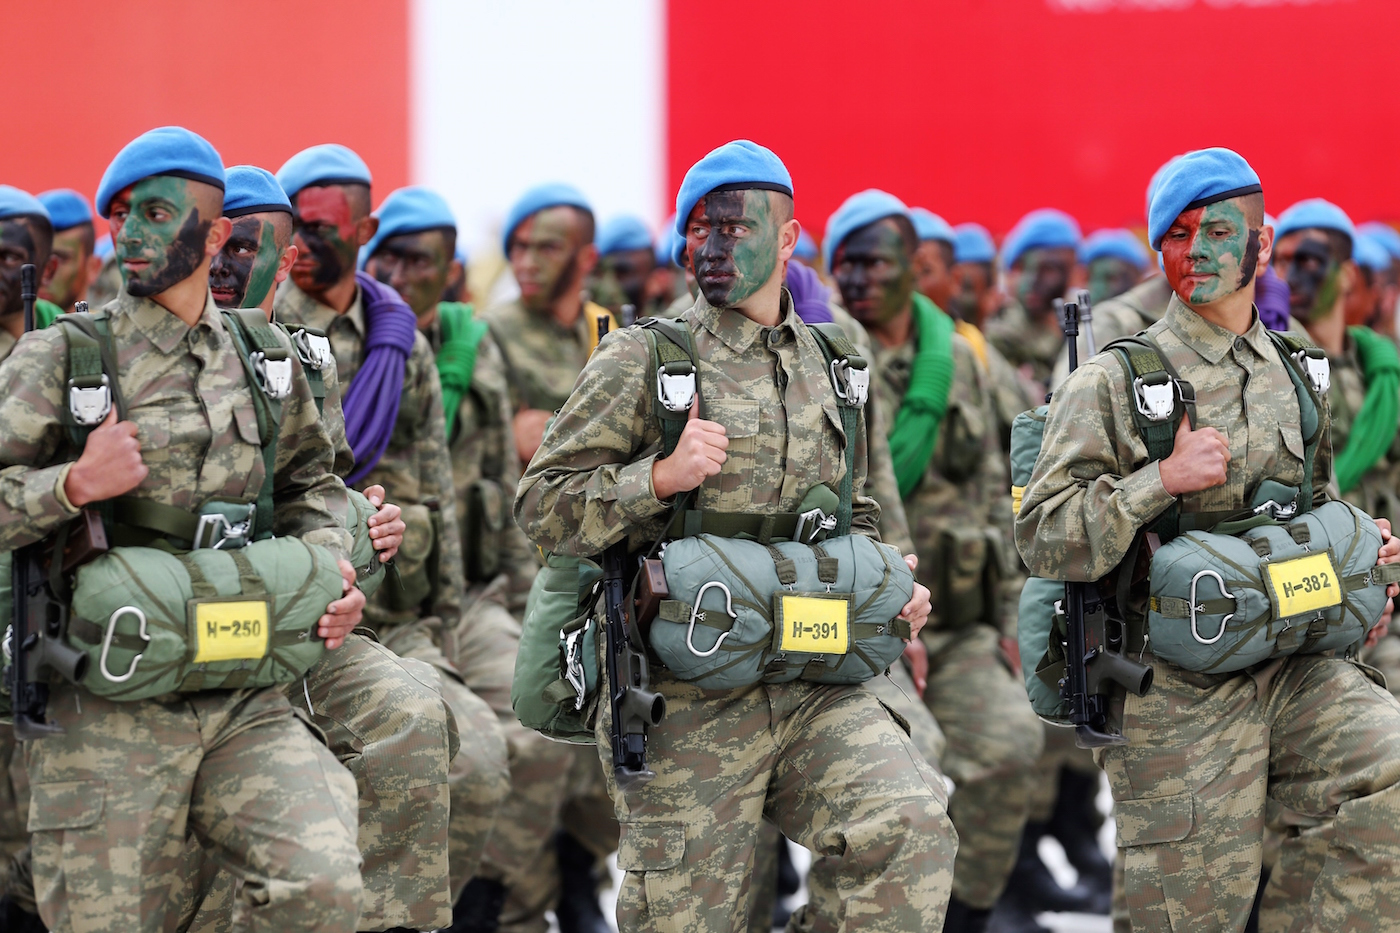 Turkey relaxes rules for 'anal exams' for gay men in military service